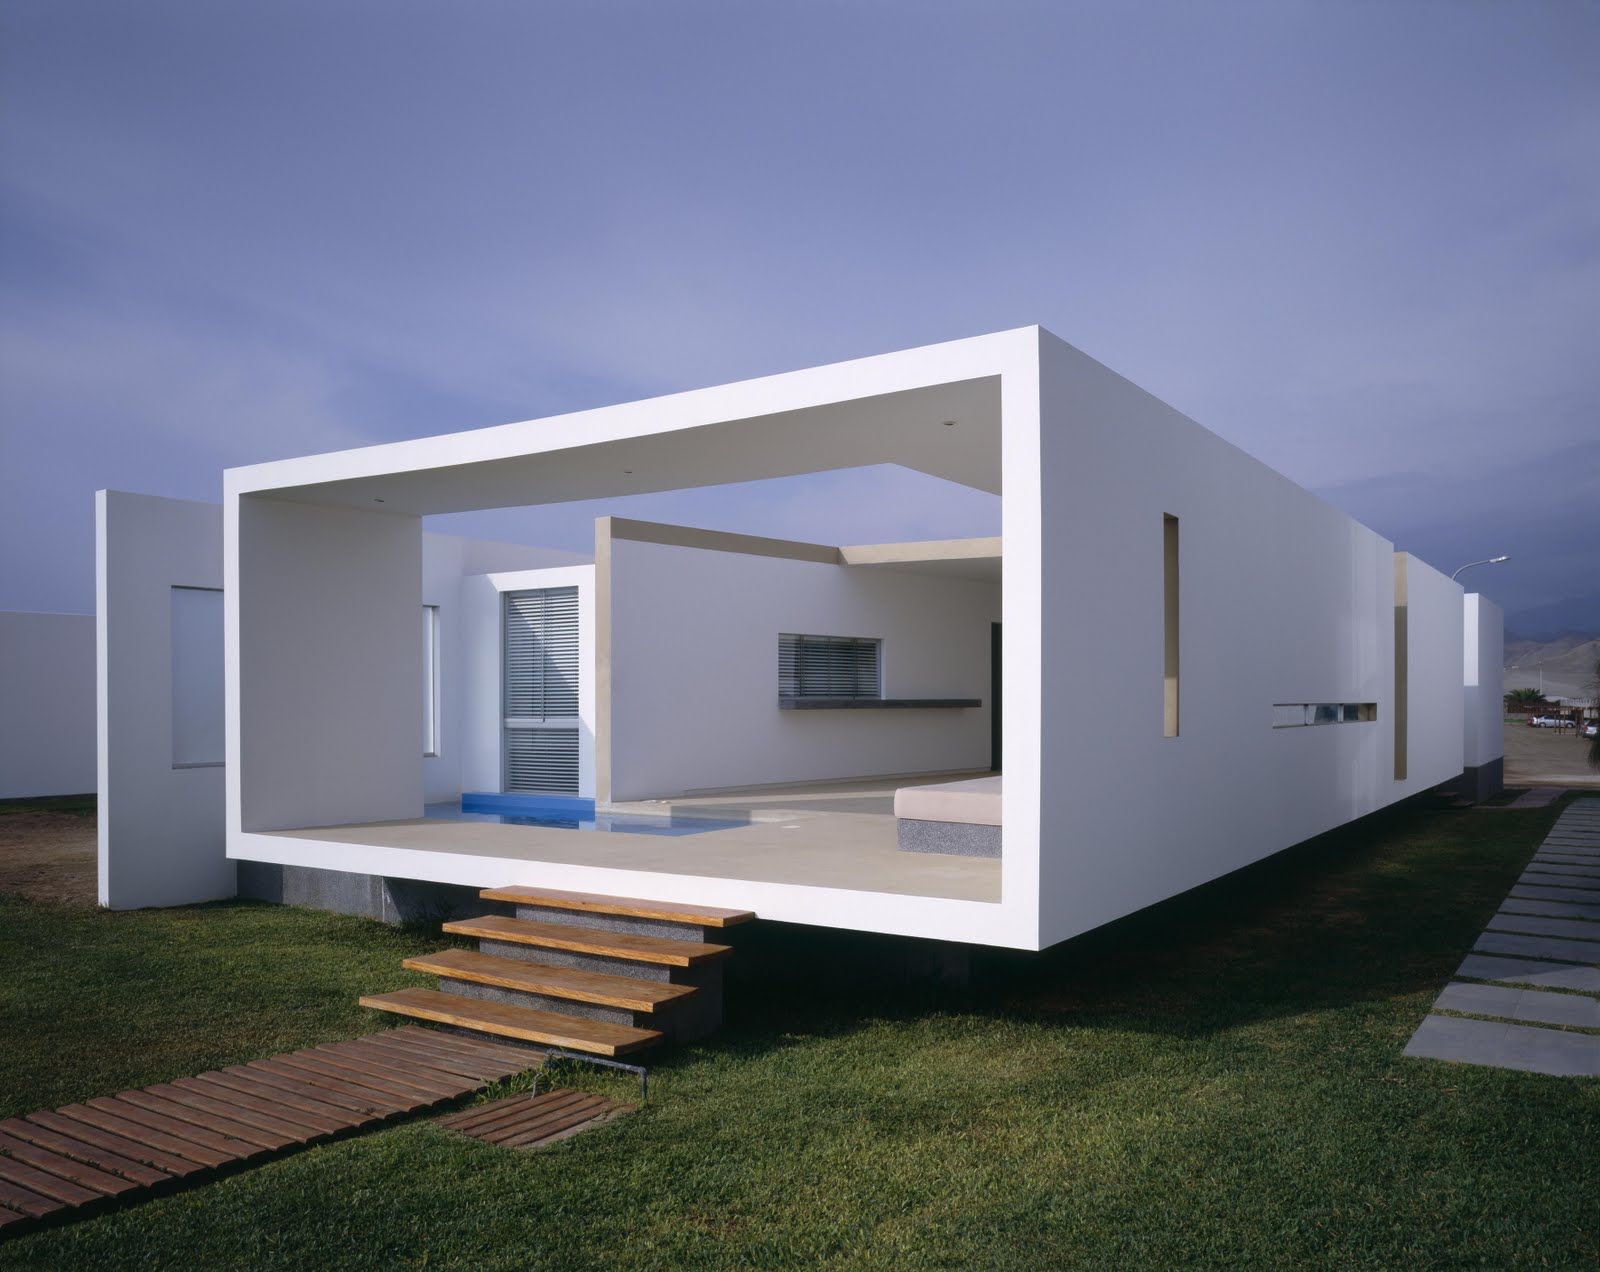 2010 07 01 archive on modern house design in peru